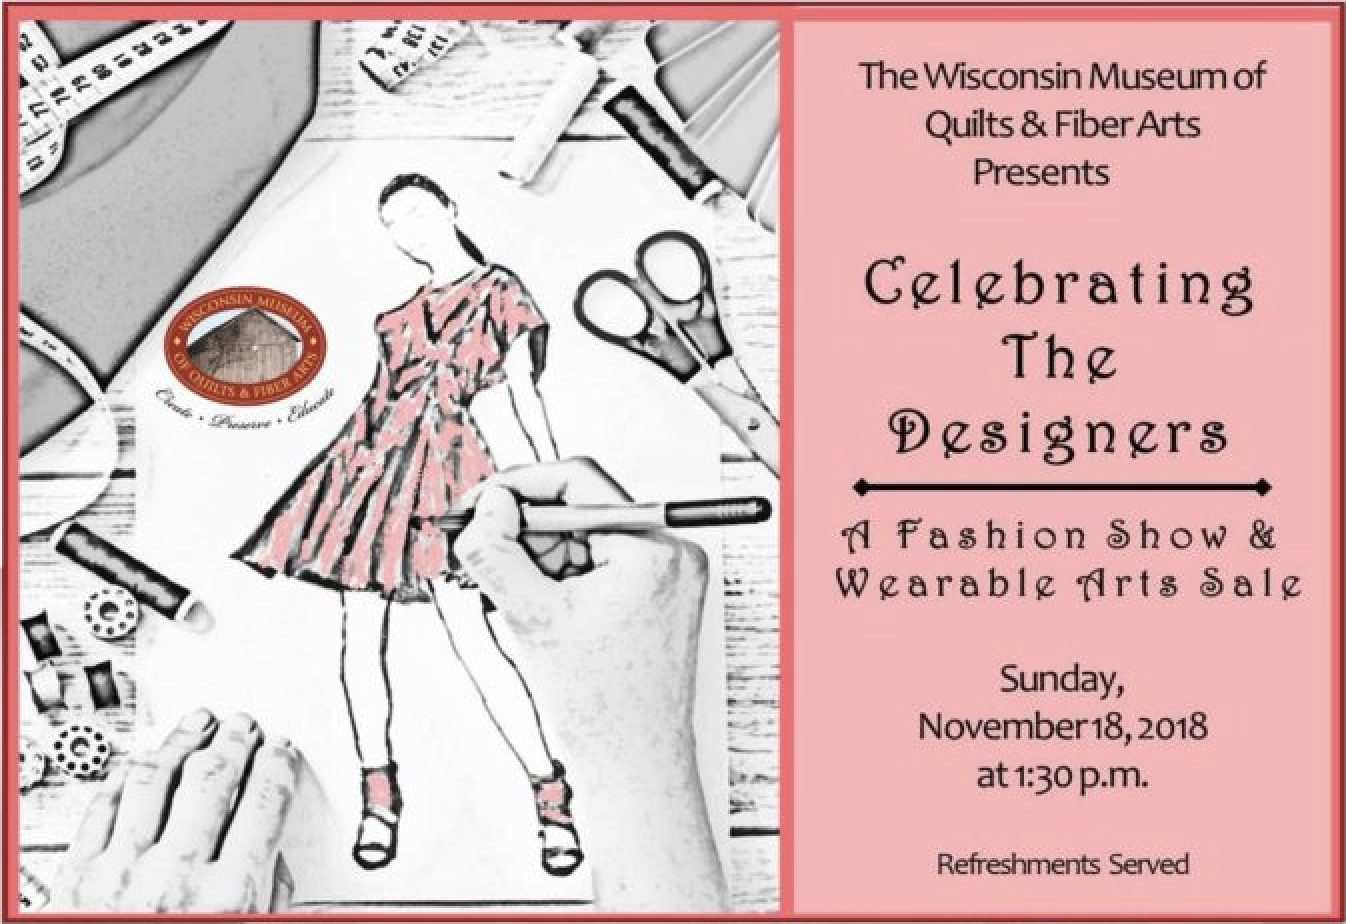 WMQFA-Cedarburg-Wisconsin-Museum-Quilts-Fiber-Arts-Fashion-Show-Art-Shop